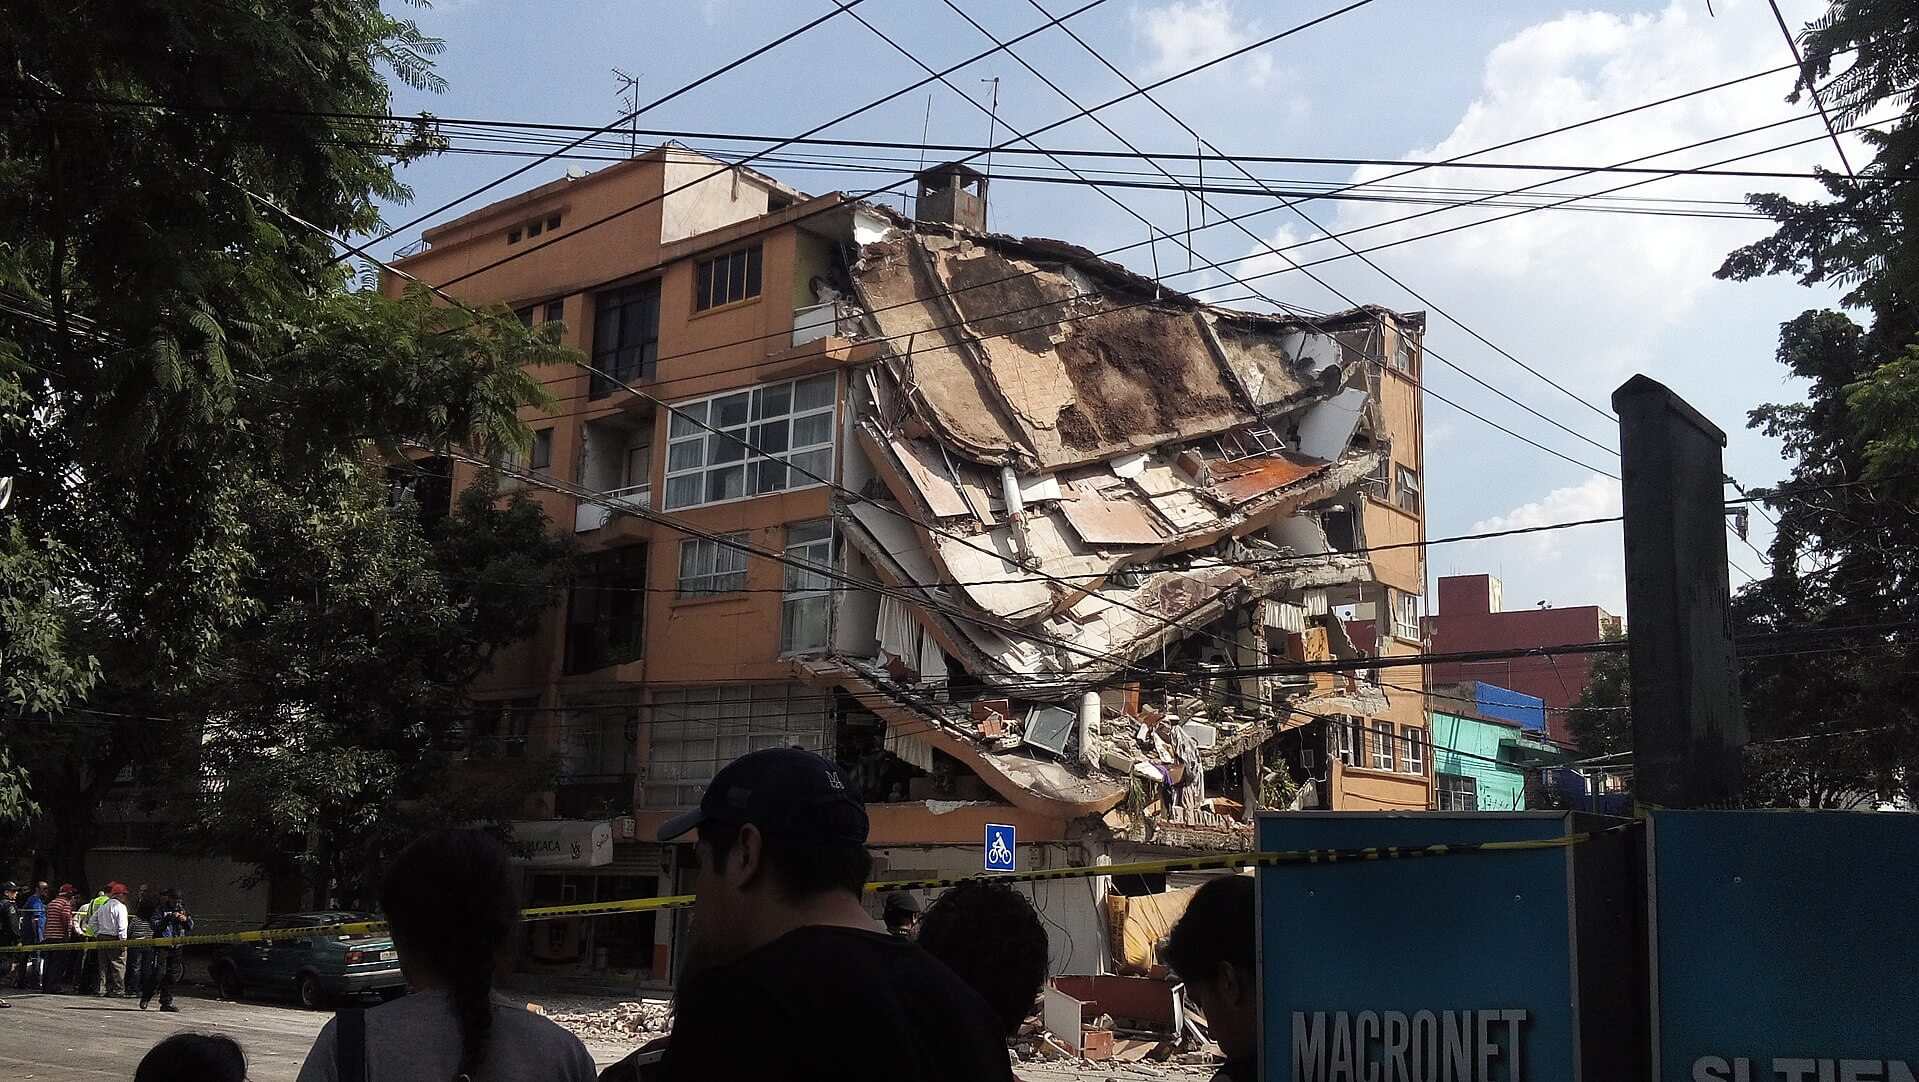 The epicenter of Mexico's lethal September 2017 earthquake was less than 65 miles (105 km) outside the nation's capital